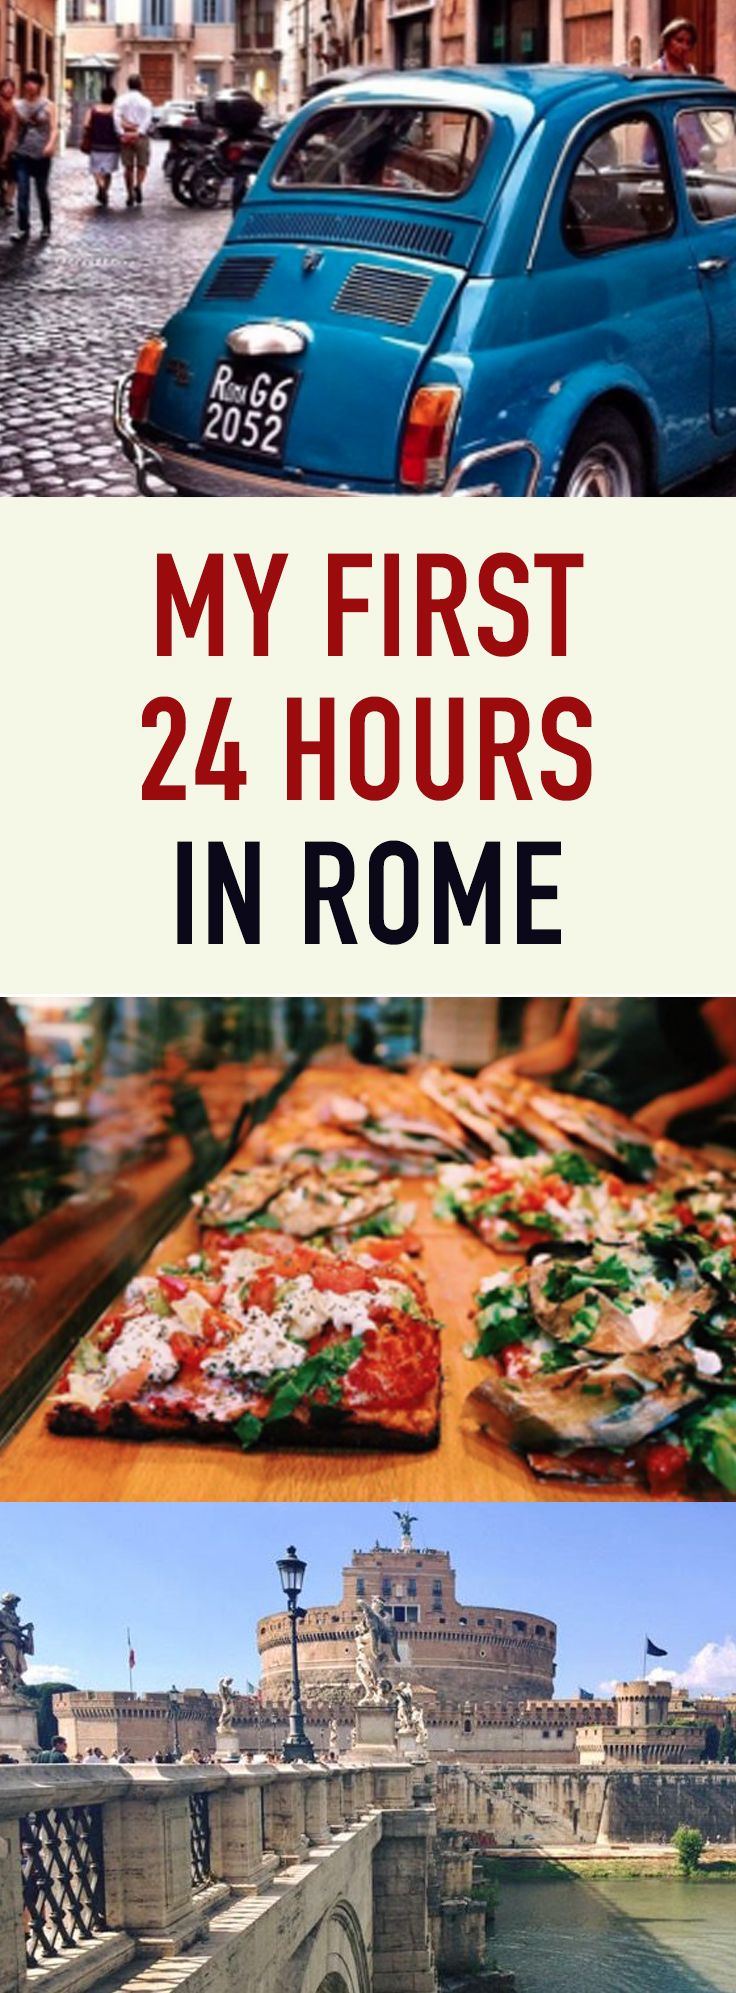 My first 24 hours in Rome. Pizza, traffic, heat and getting lost!